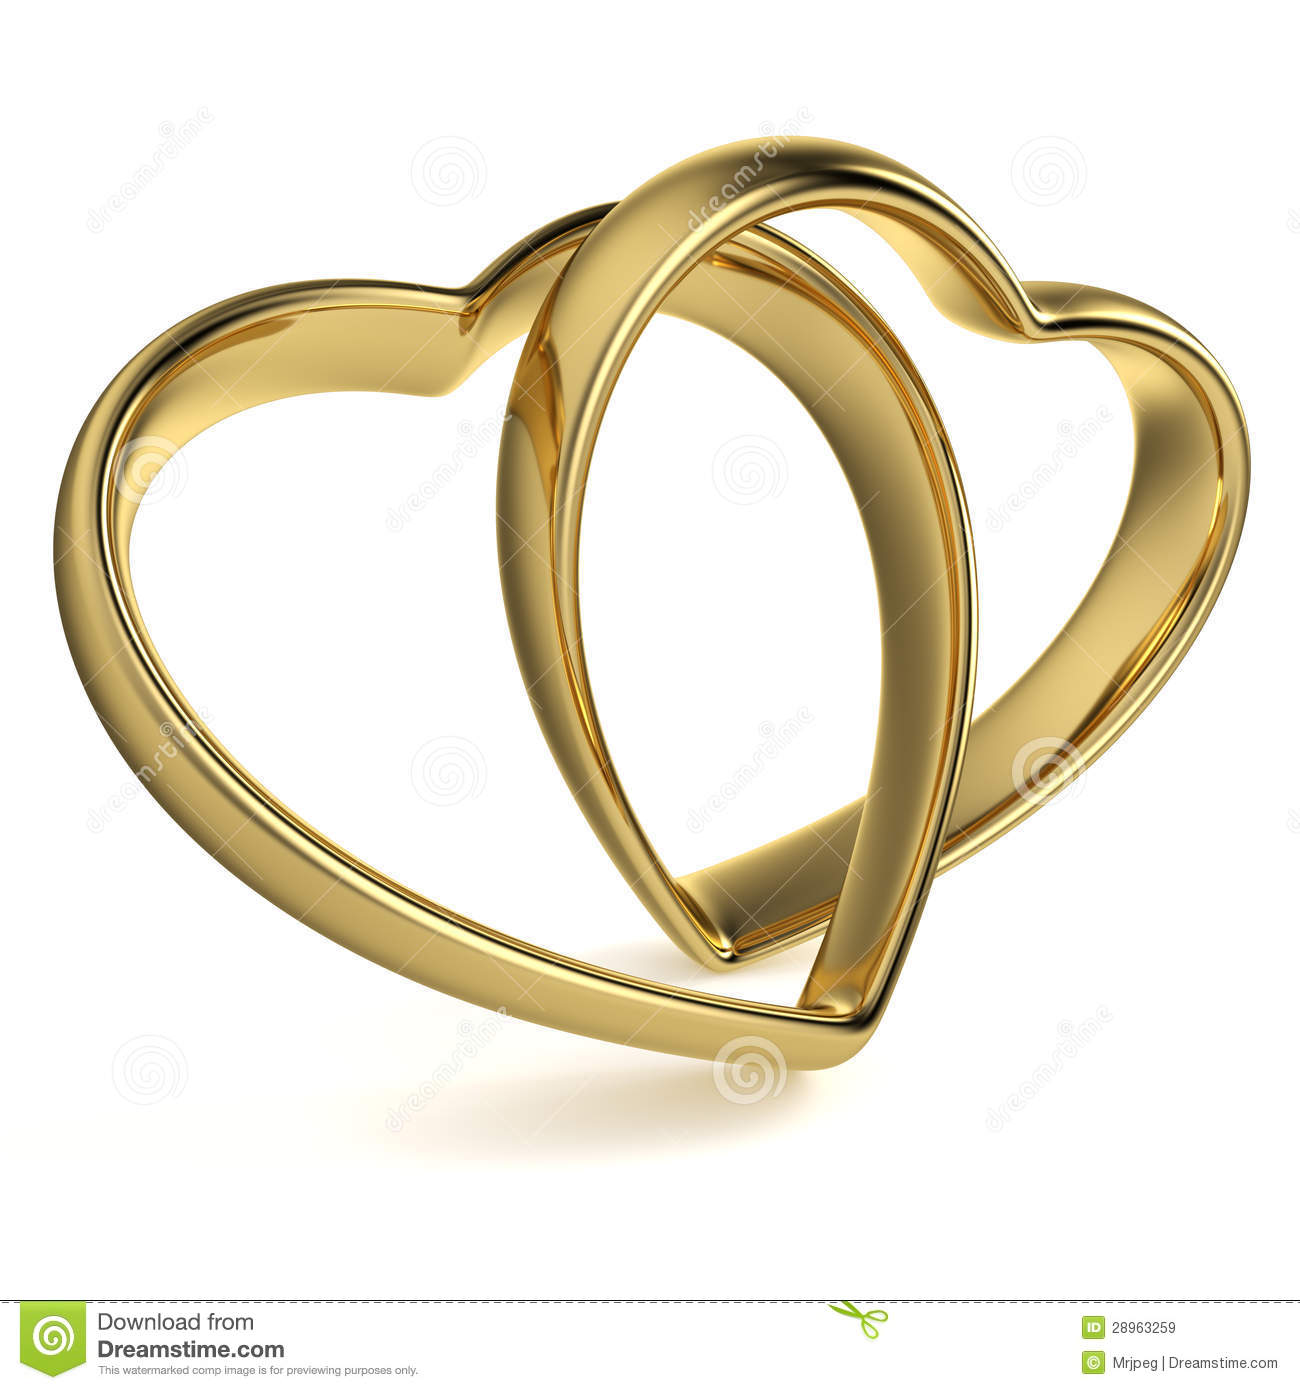 heart shaped wedding rings stock illustration Wedding Border Clip Art free wedding ring clipart and graphics